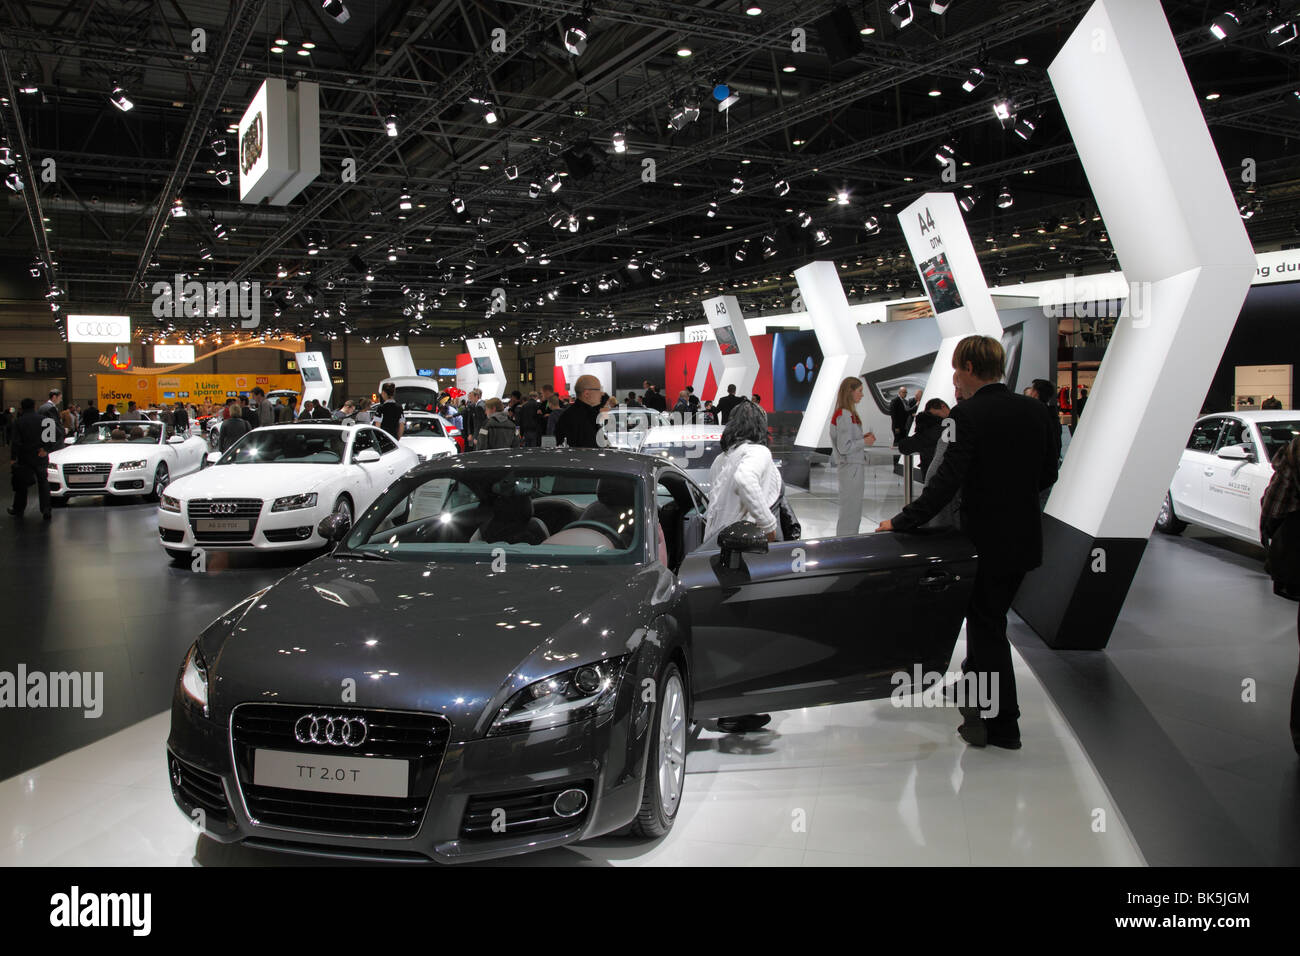 AUDI TT 2.0 T at the Auto Mobil International (AMI) - Motor Show 2010 in Leipzig, Germany - Stock Image